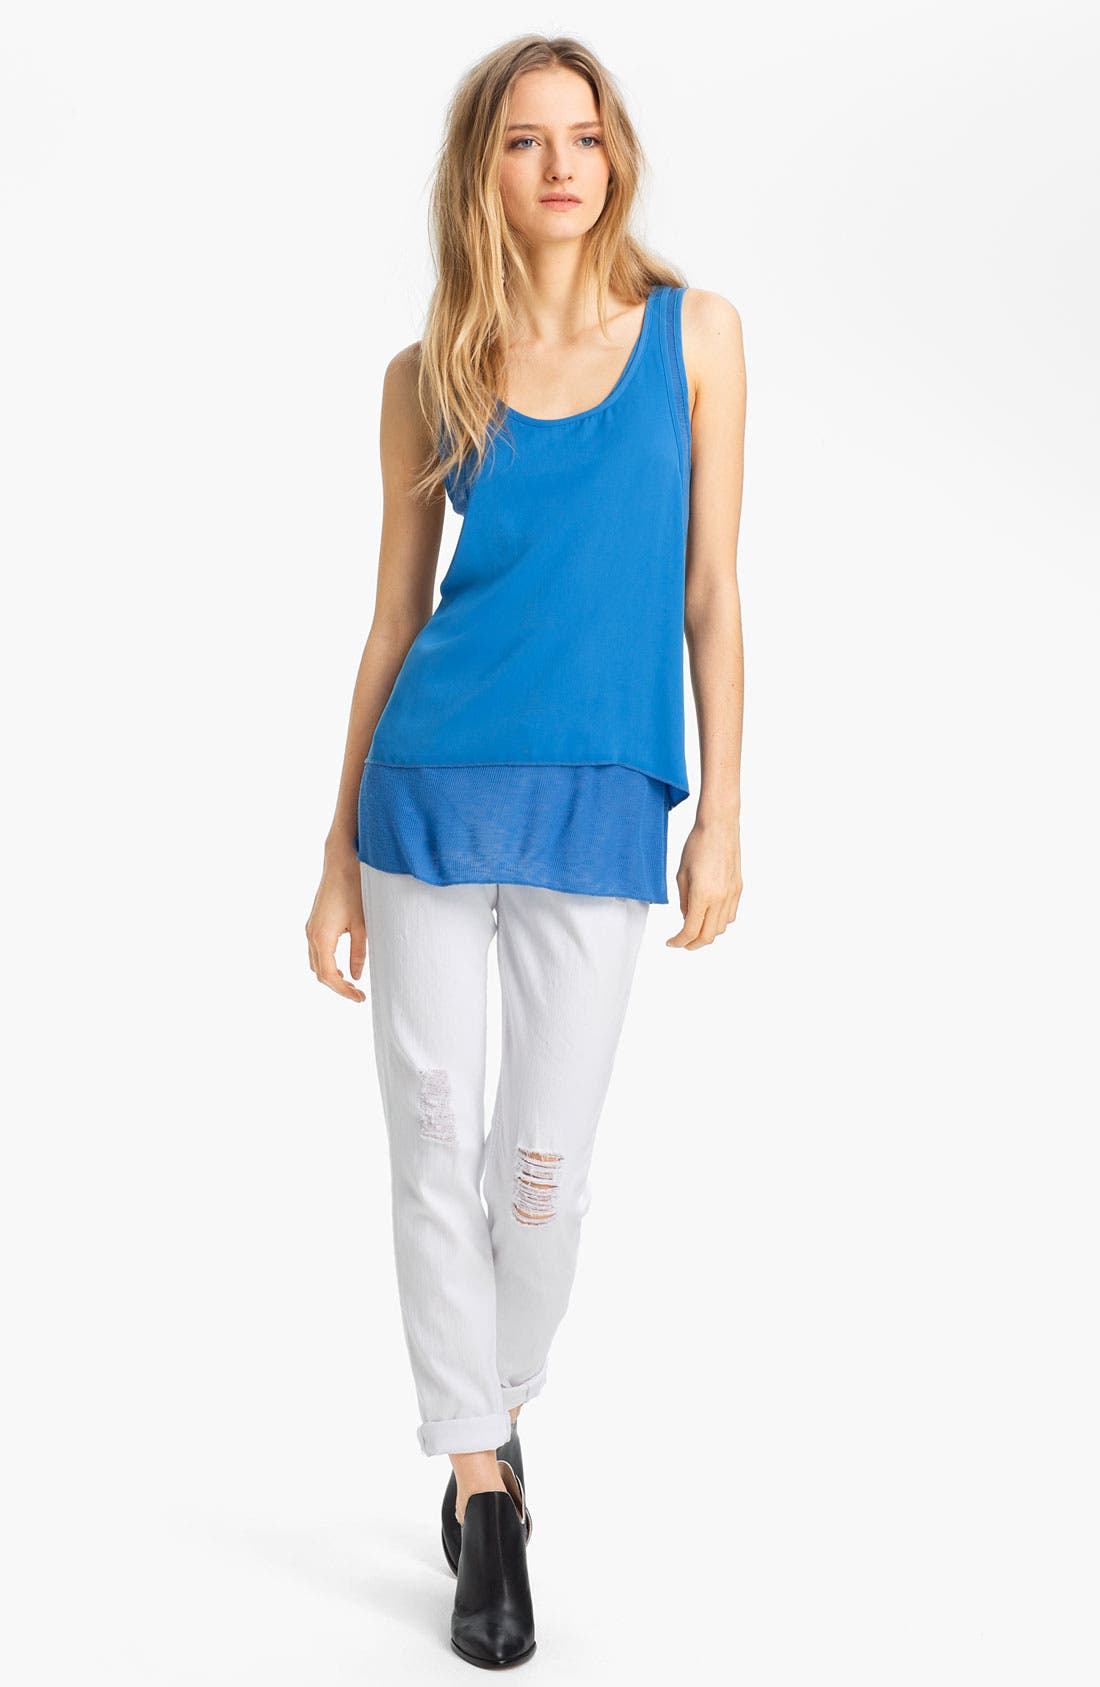 Alternate Image 1 Selected - rag & bone 'Zuzanna' Racerback Tank